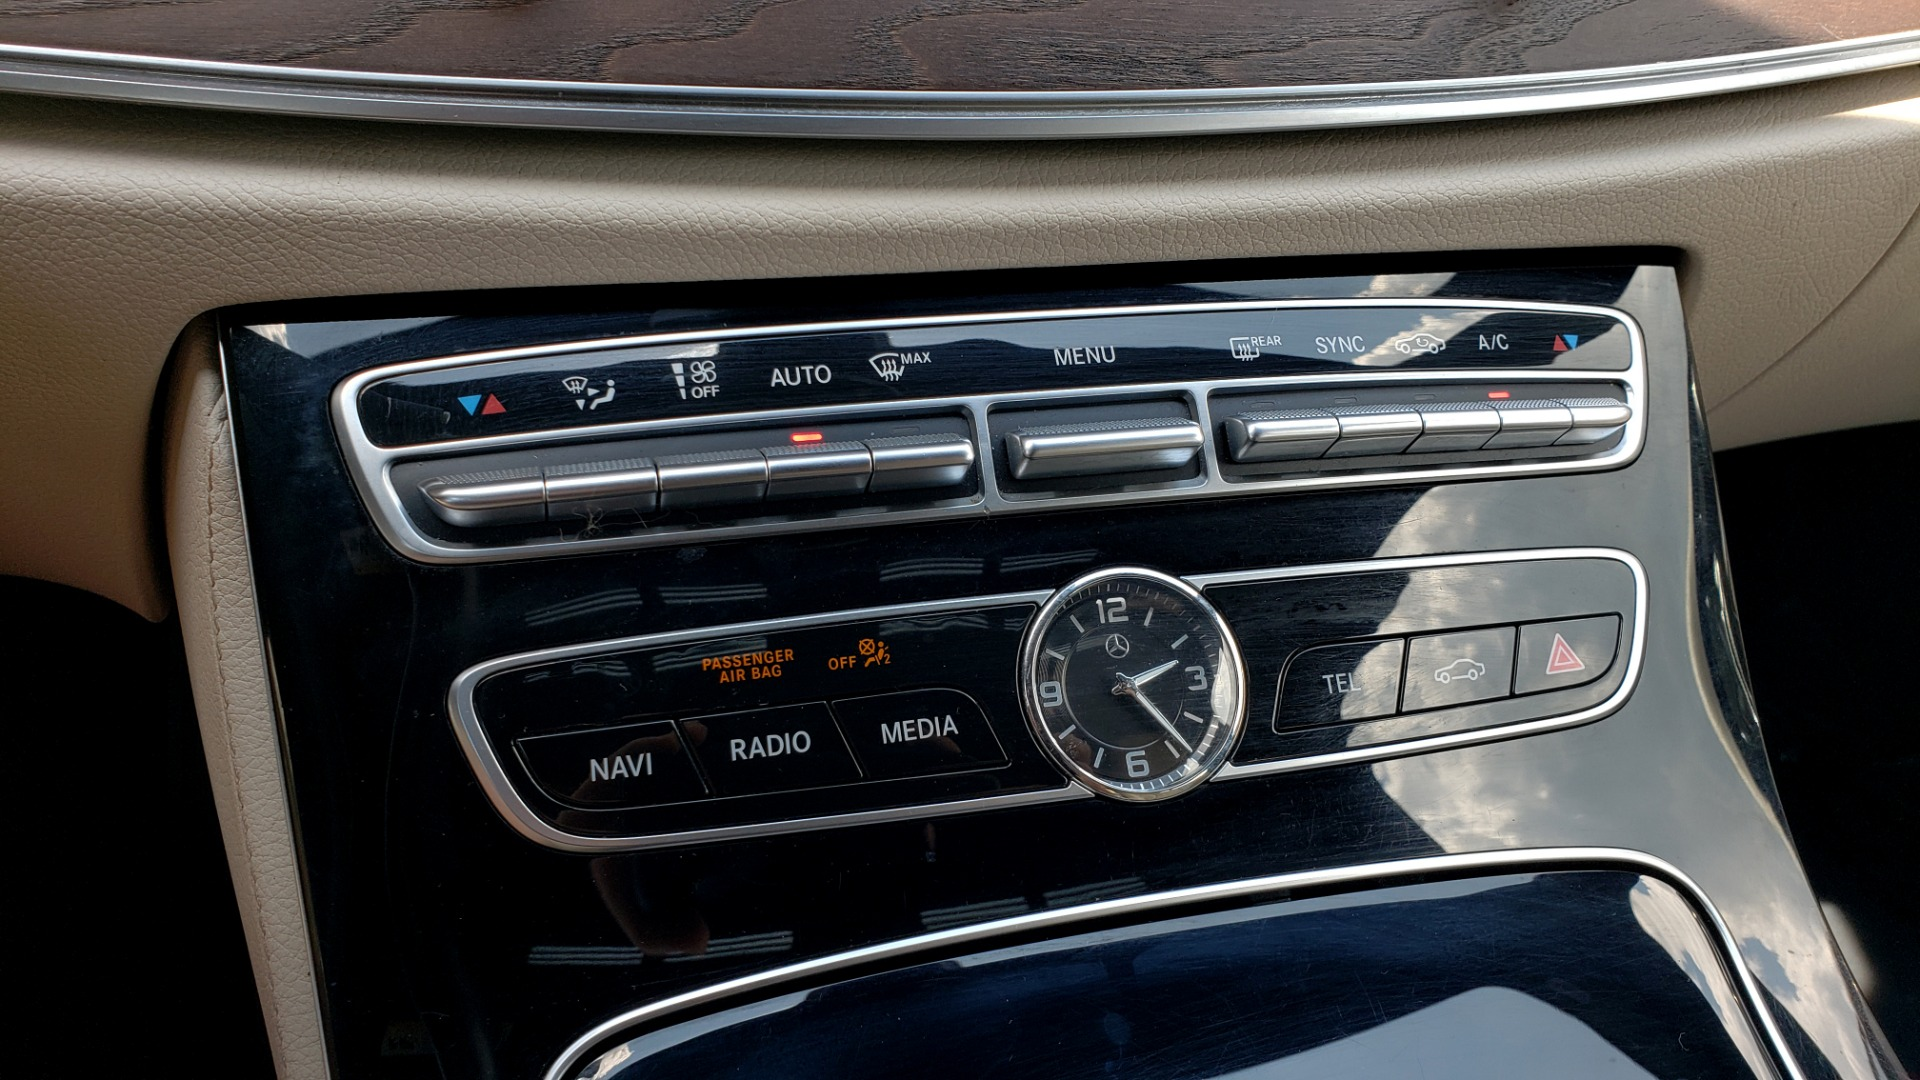 Used 2017 Mercedes-Benz E-CLASS E 300 PREMIUM / SPORT / NAV / SUNROOF / HTD STS / BSM / REARVIEW for sale $27,995 at Formula Imports in Charlotte NC 28227 43